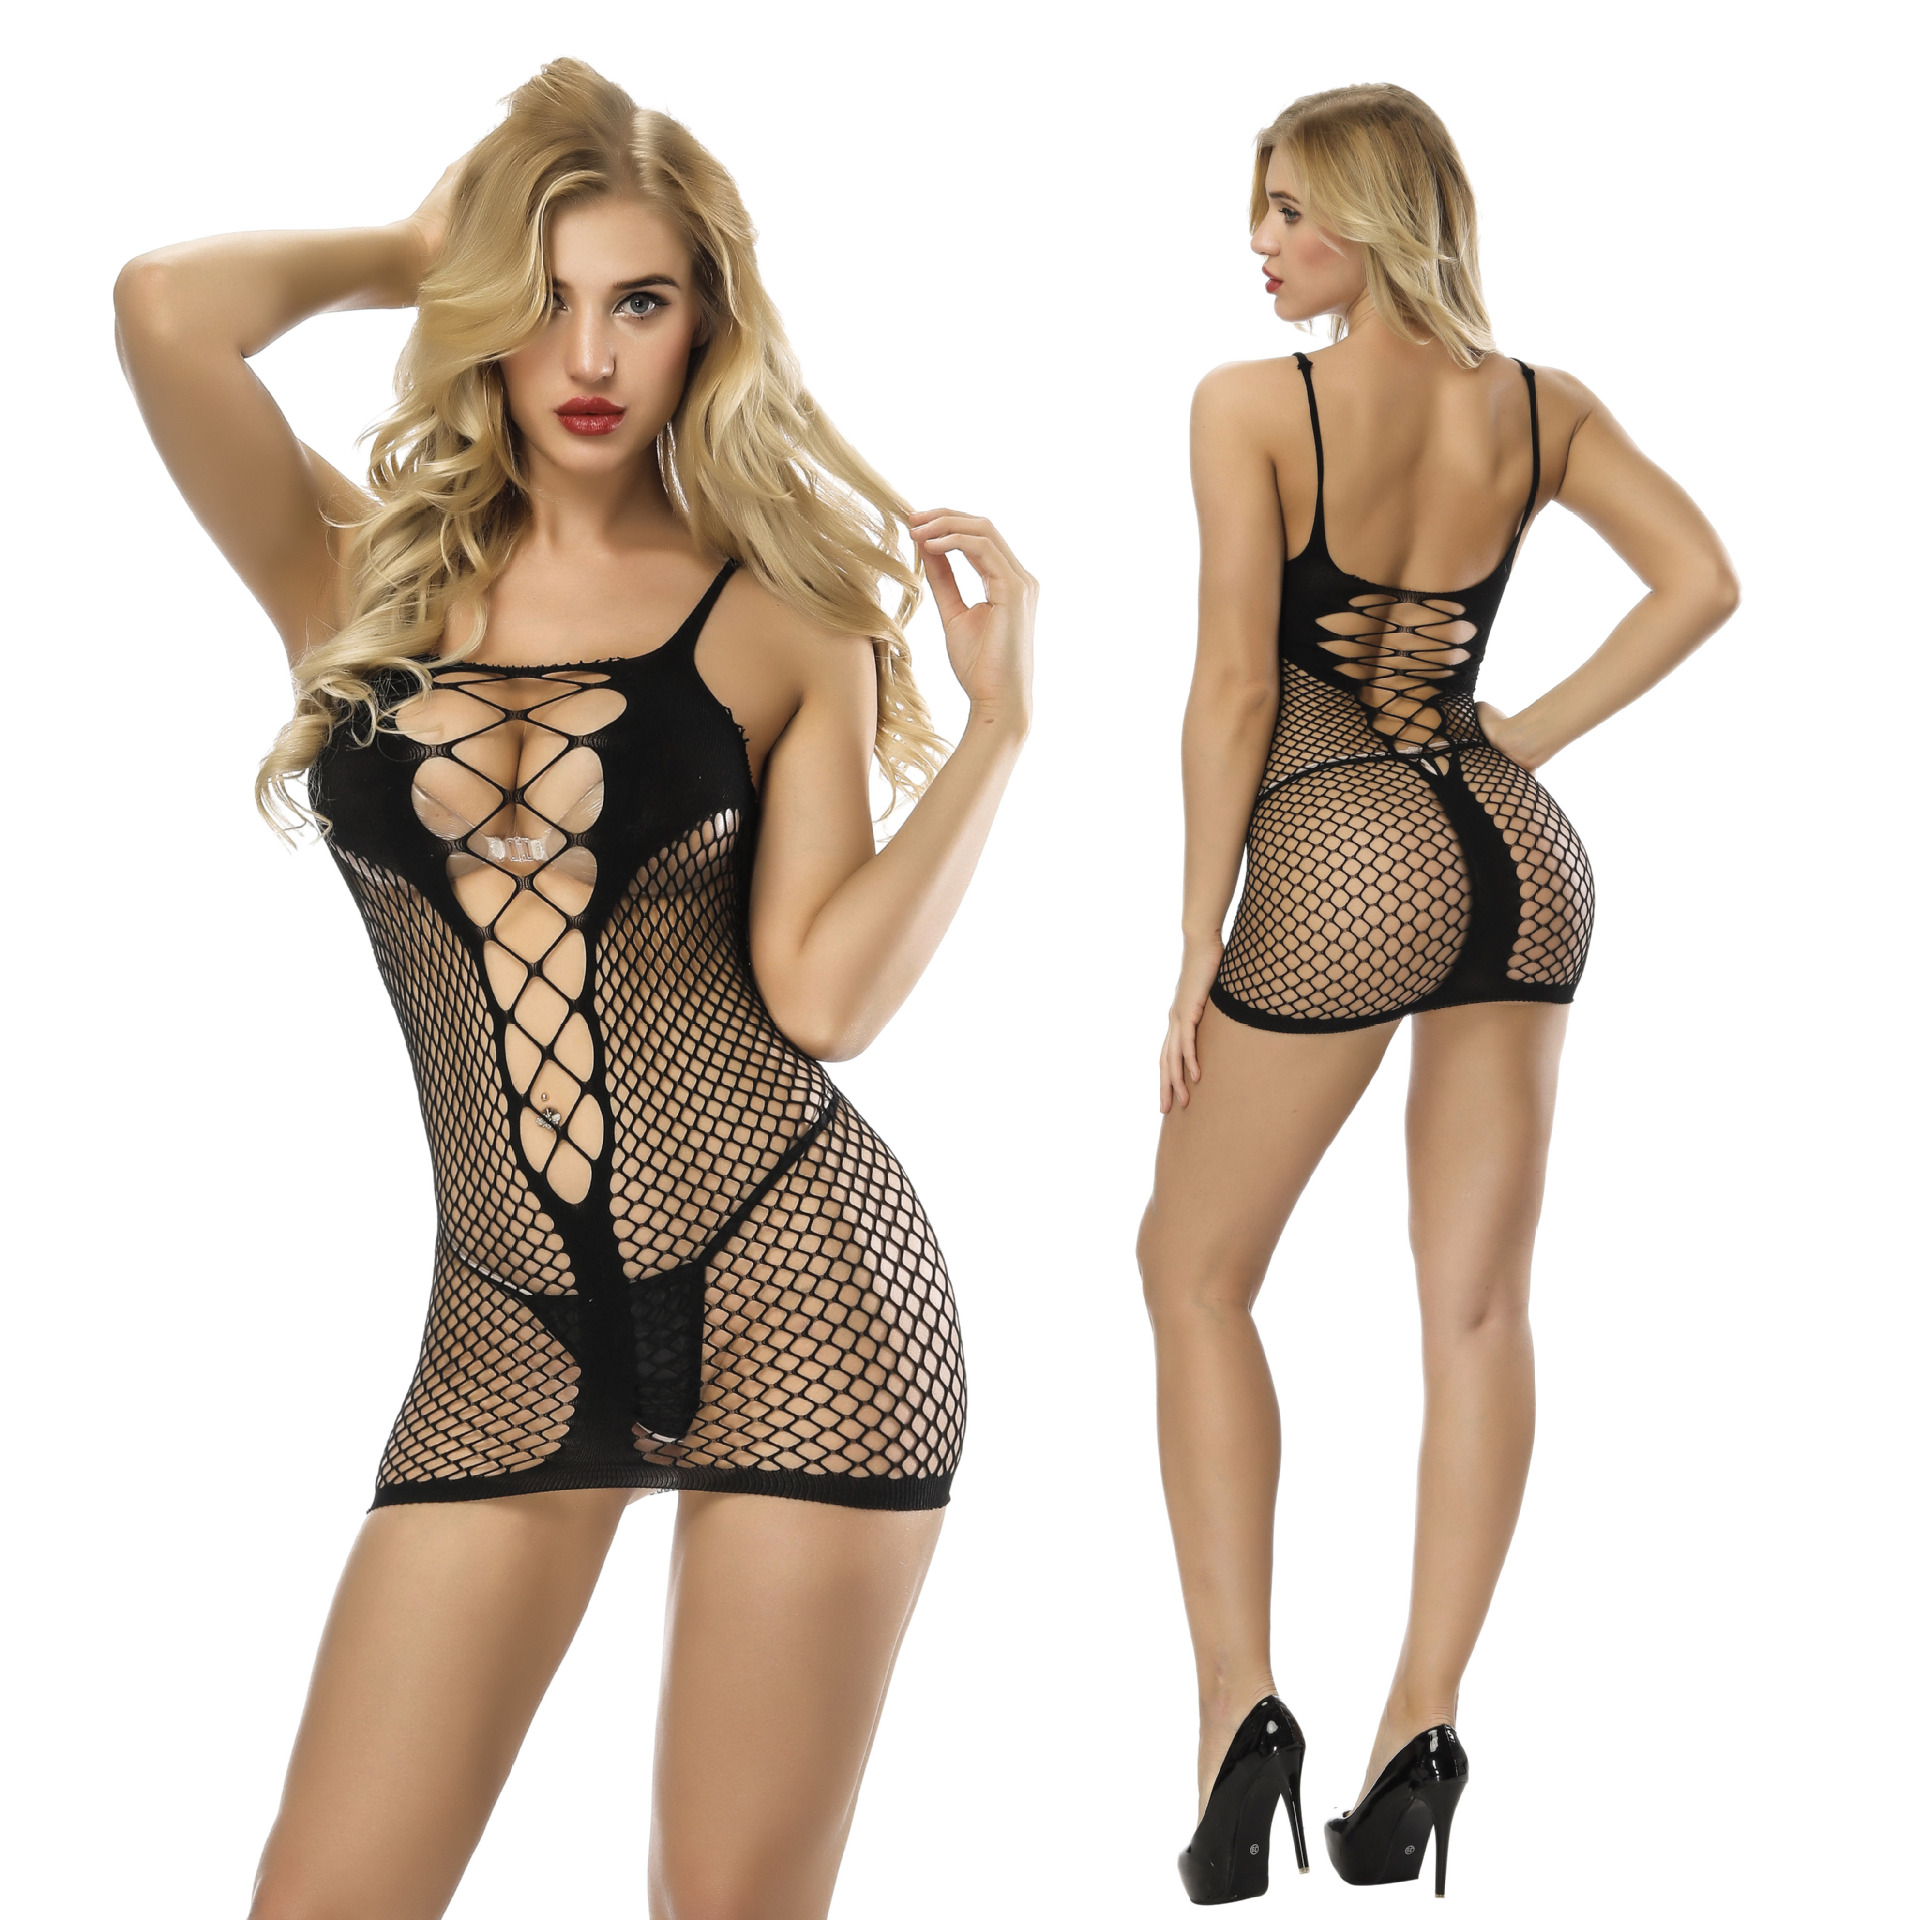 Women's Exotic Apparel Newest Sexy Short Skirt Sexy Lingerie High Elastic Tight Hollow Out Mesh Erotic Net Dress Jacquard Perspective Exotic Dresses